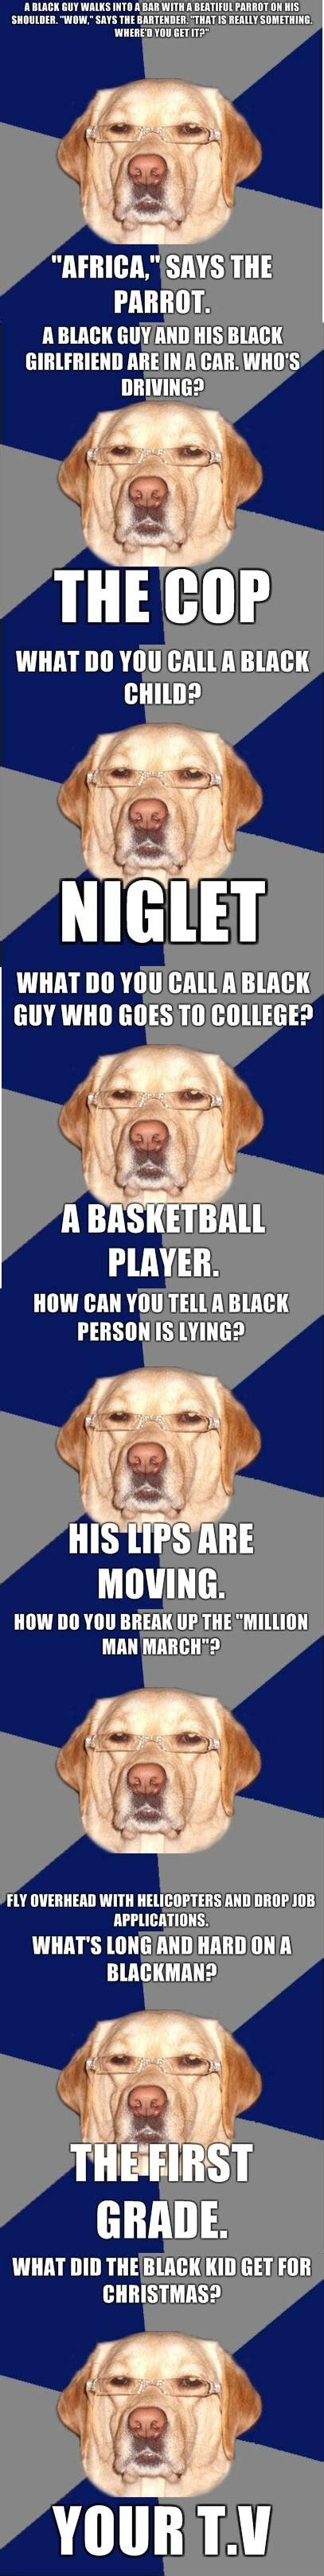 Racist Dog Meme - racist dog meme gallery ebaum s world